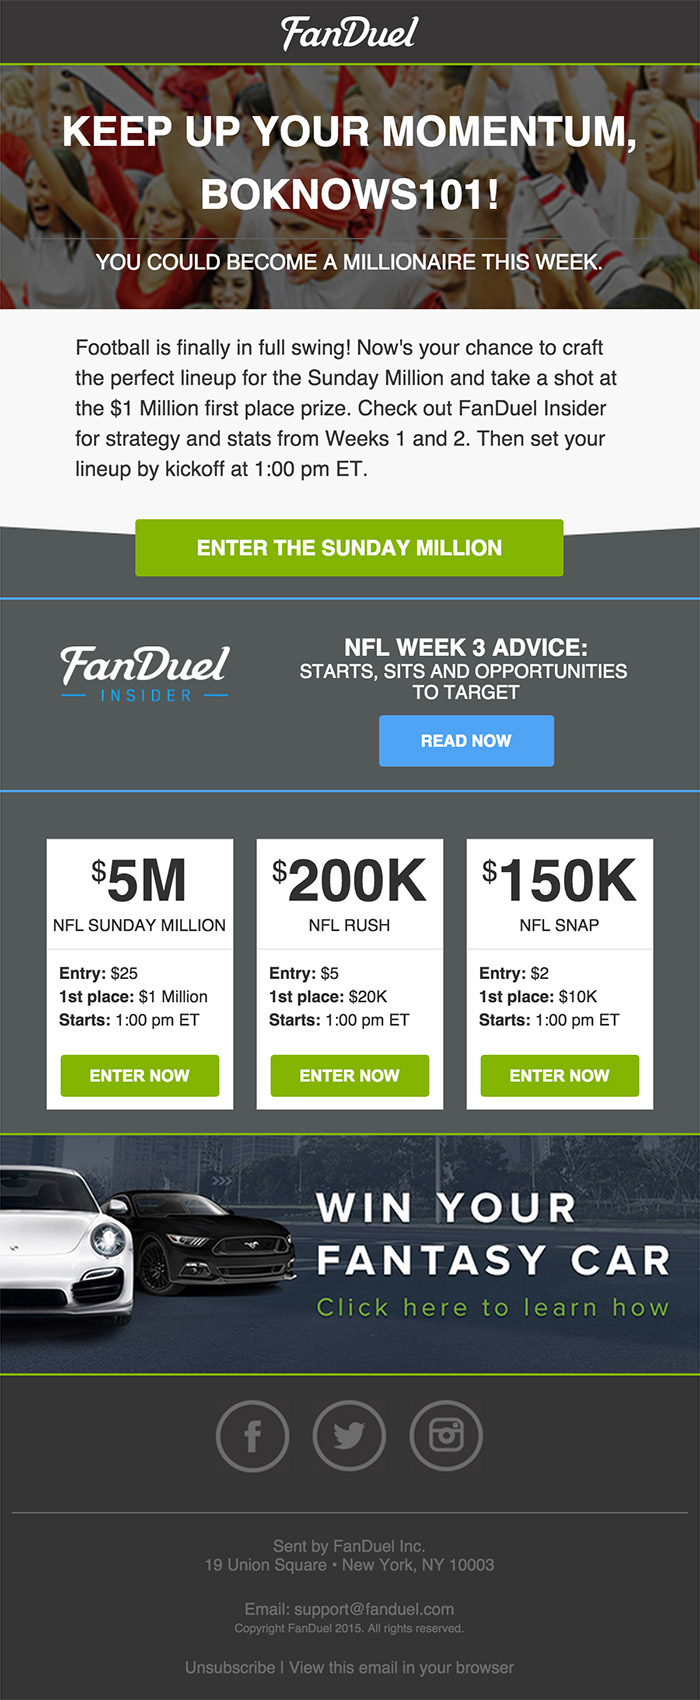 Fanduel Contests Email nice design